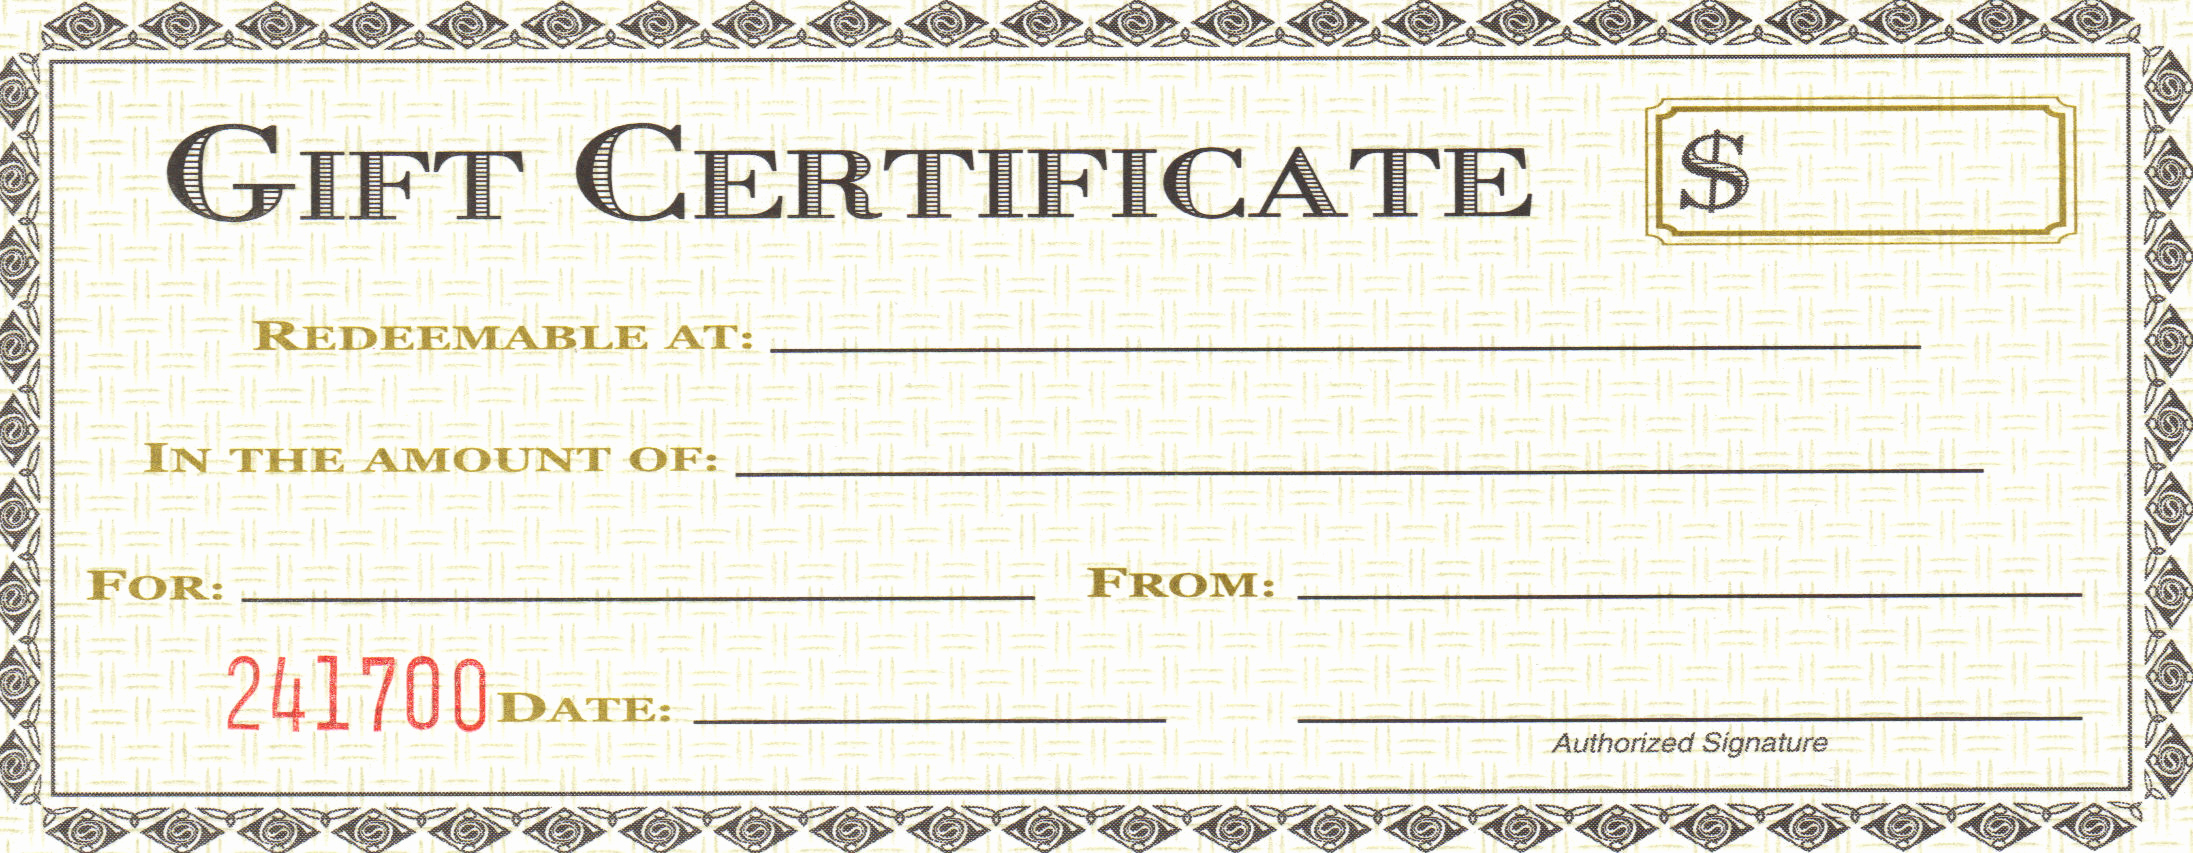 Template for Gift Certificate Best Of Gift Certificate Template Fotolip